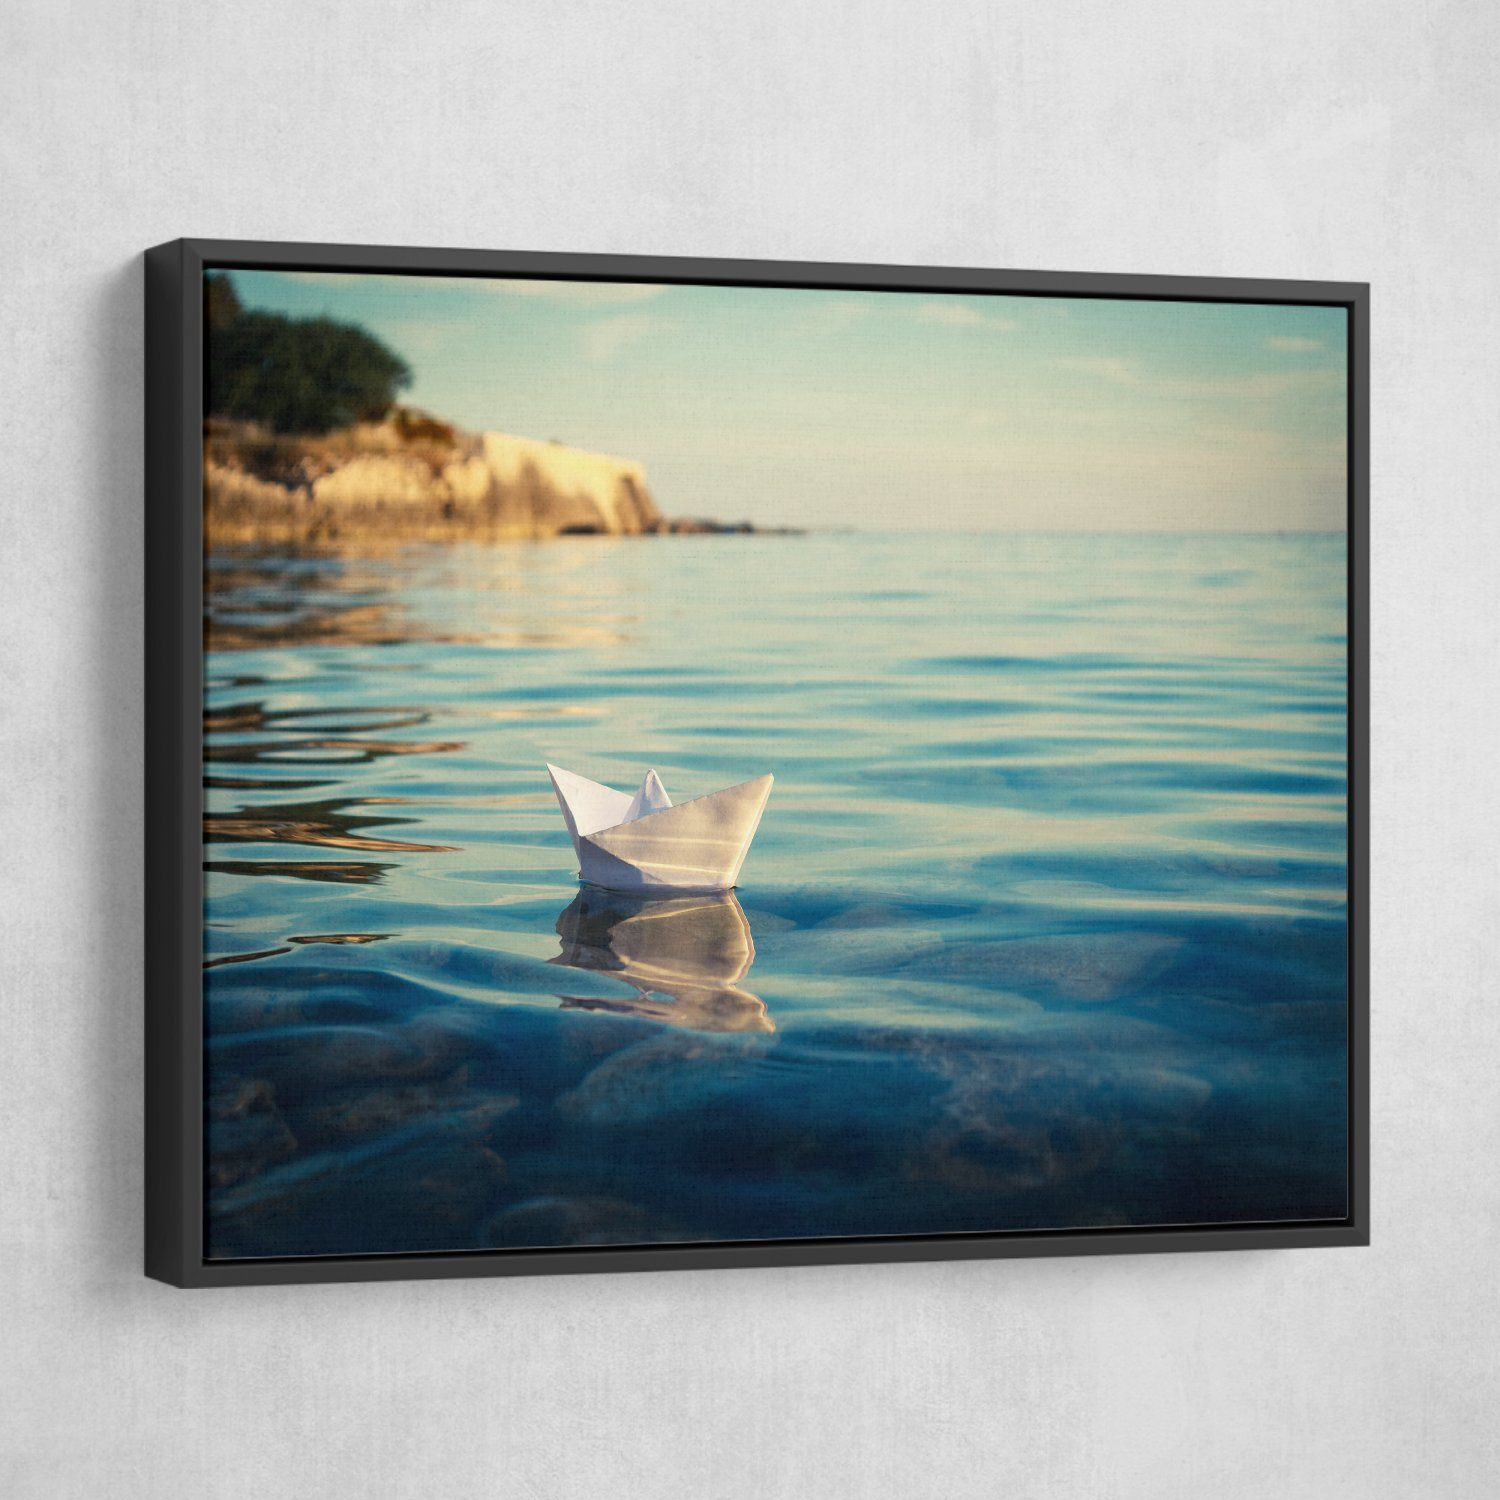 Origami Paper Boat wall art black floating frame